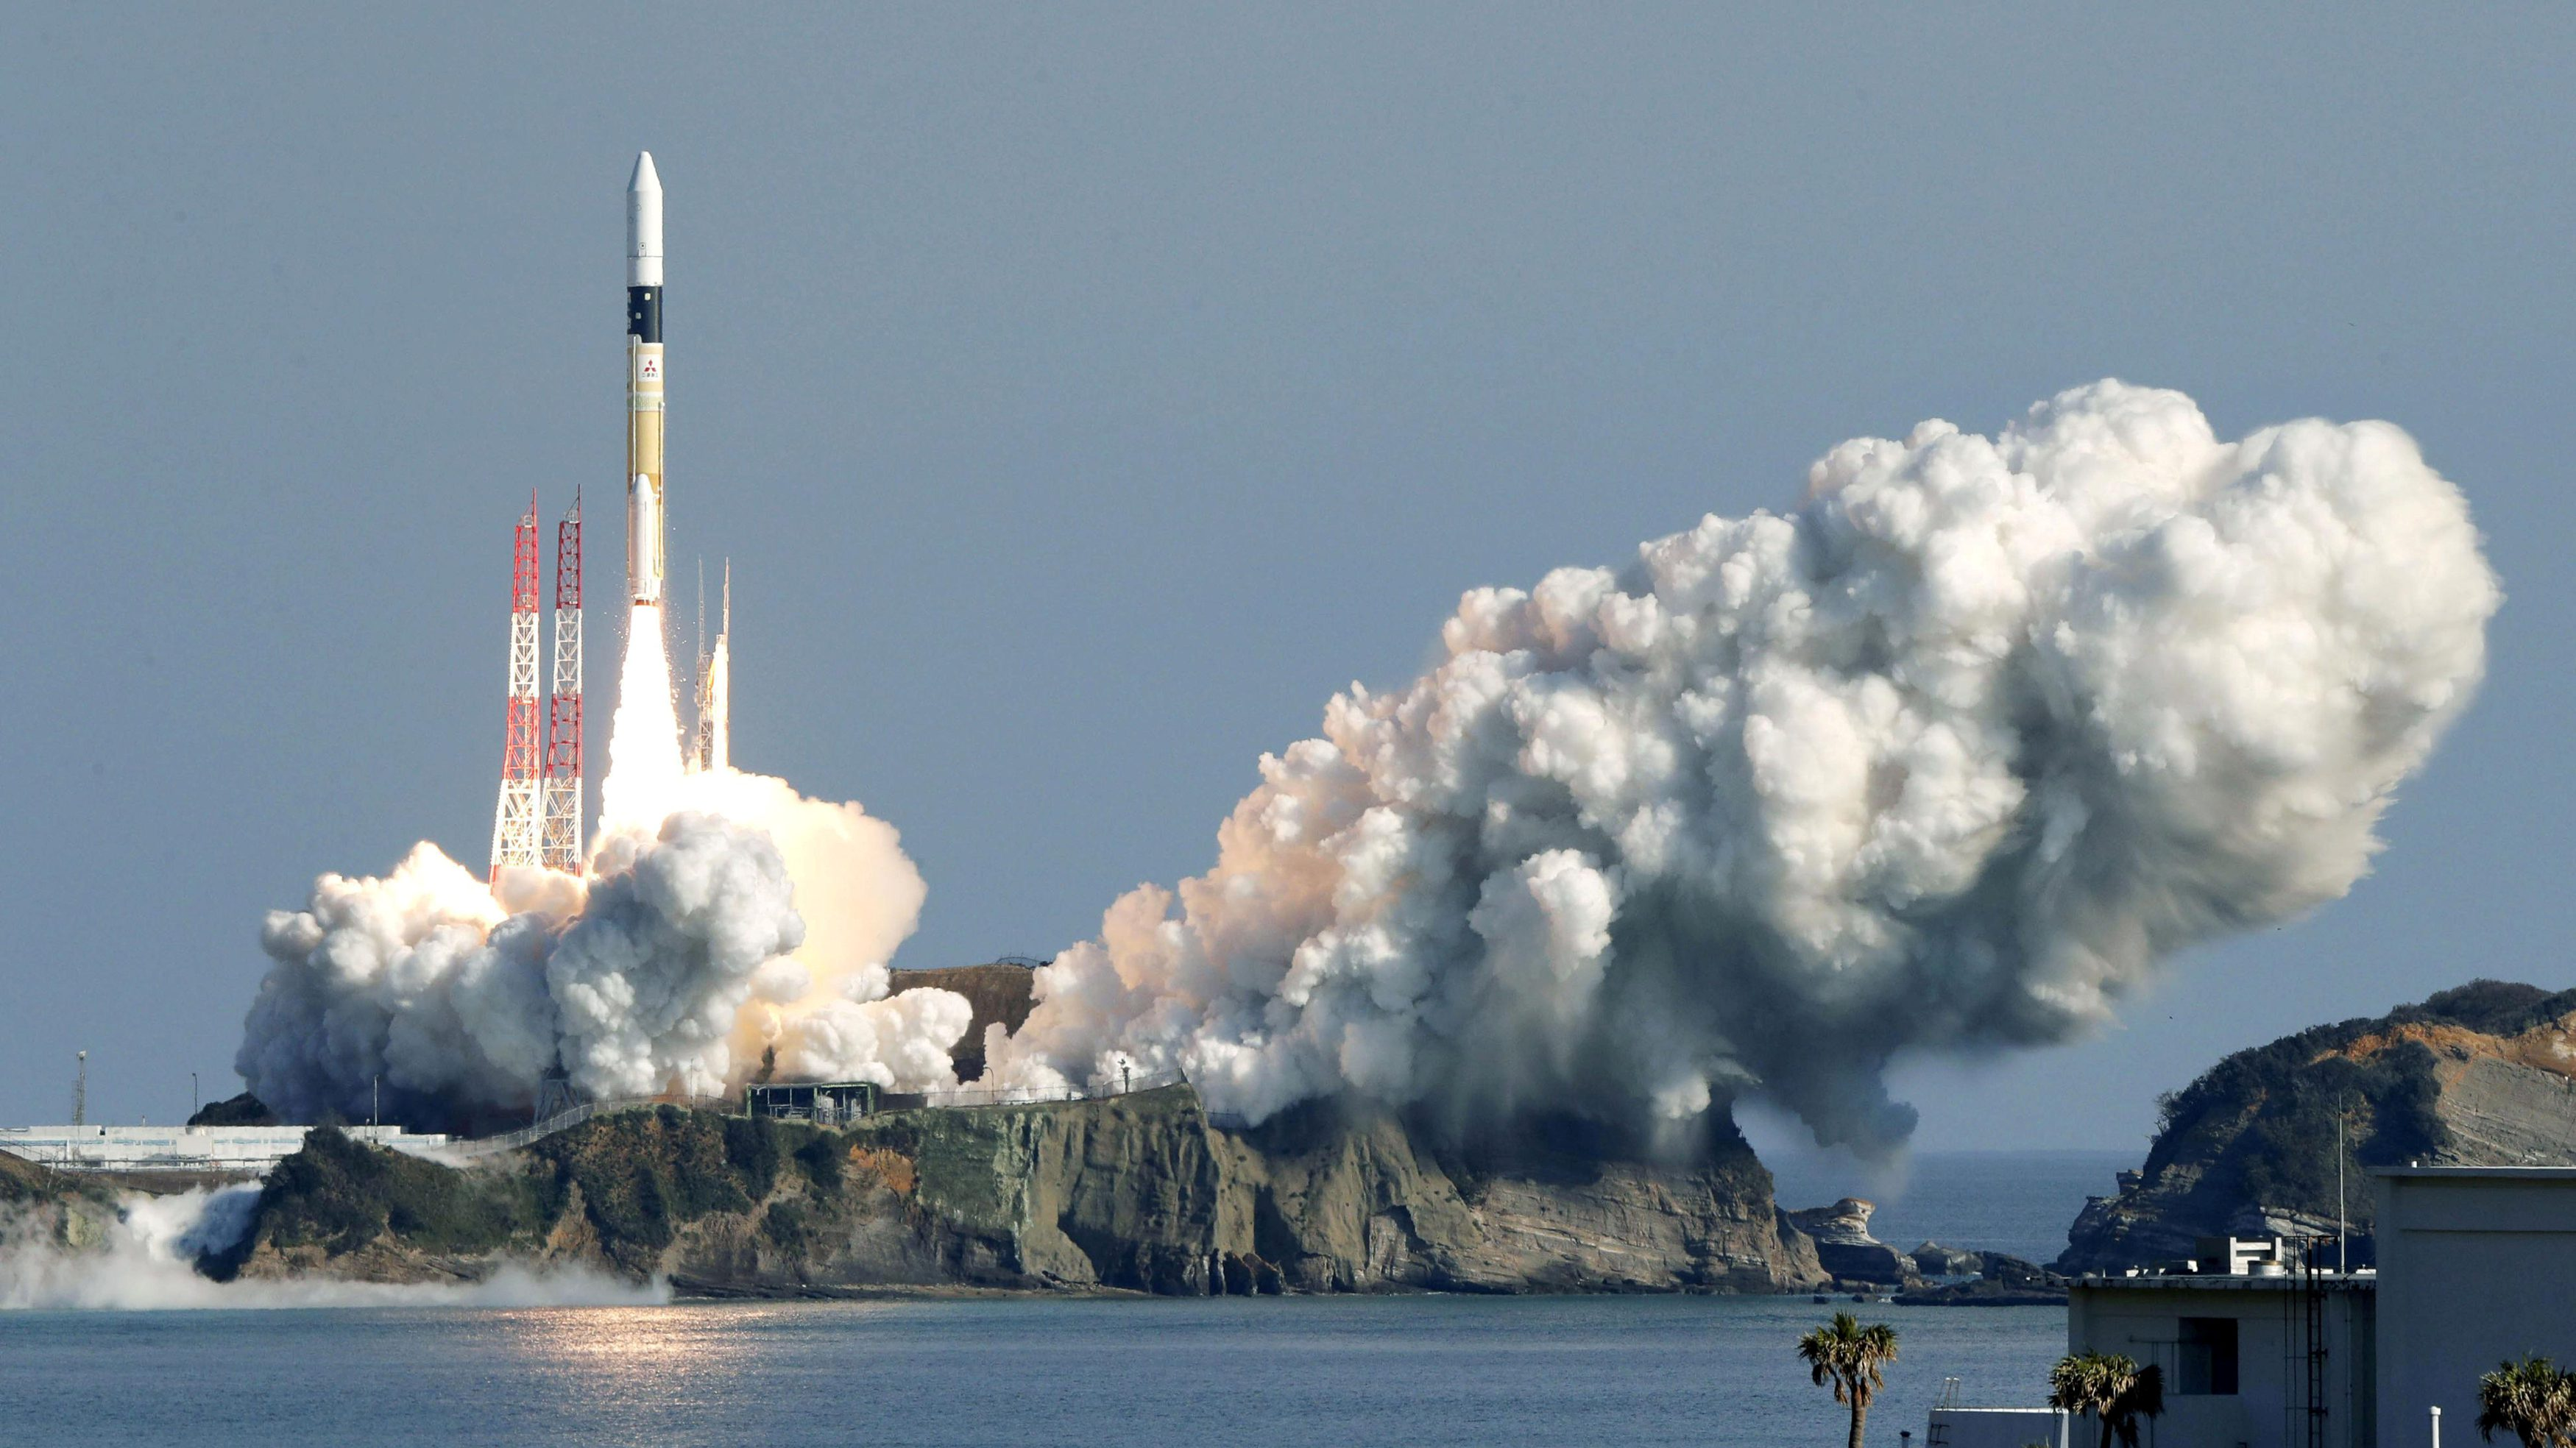 A H-IIA rocket carrying the satellites lifts off from the launching pad at Tanegashima Space Center in Tanegashima